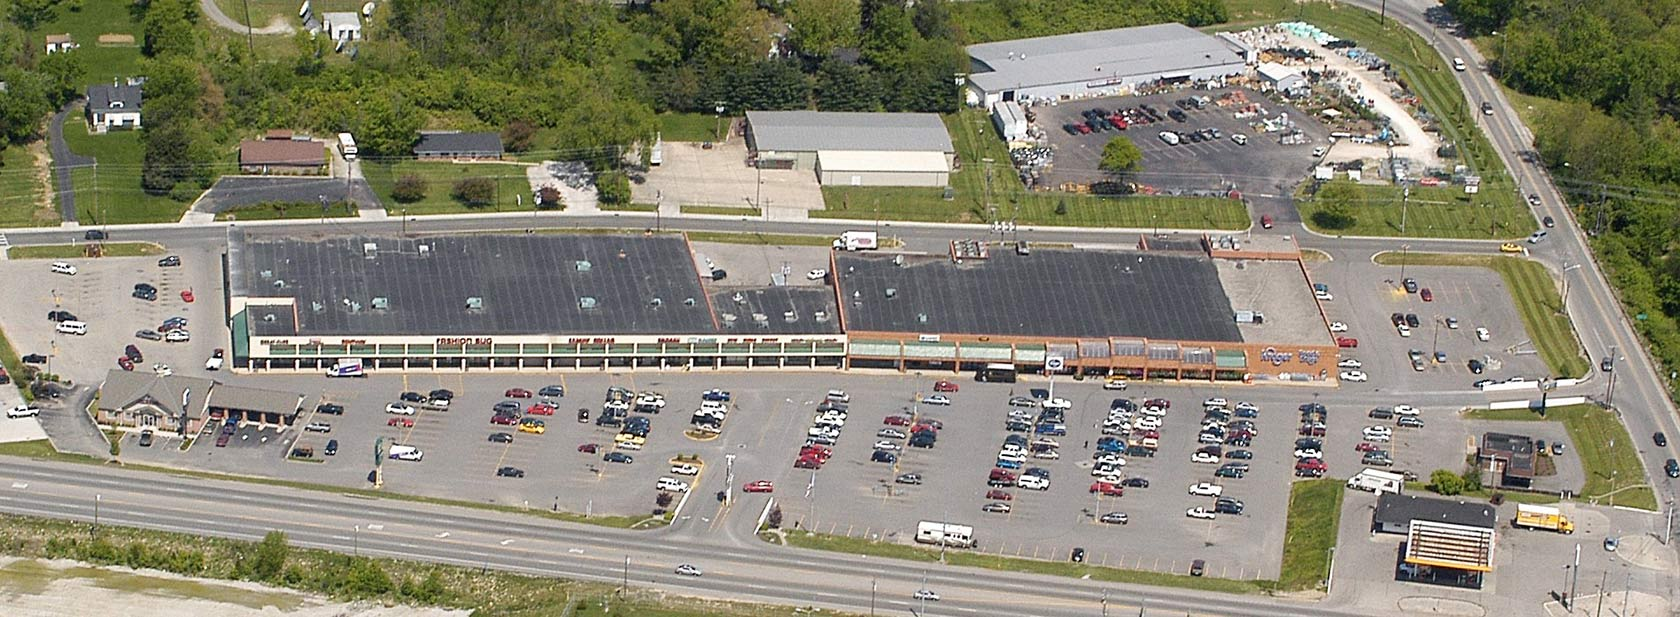 Aerial view of Dearborn Shopping Center in Lawrenceburg, Indiana, owned and managed by The Leathery Company.